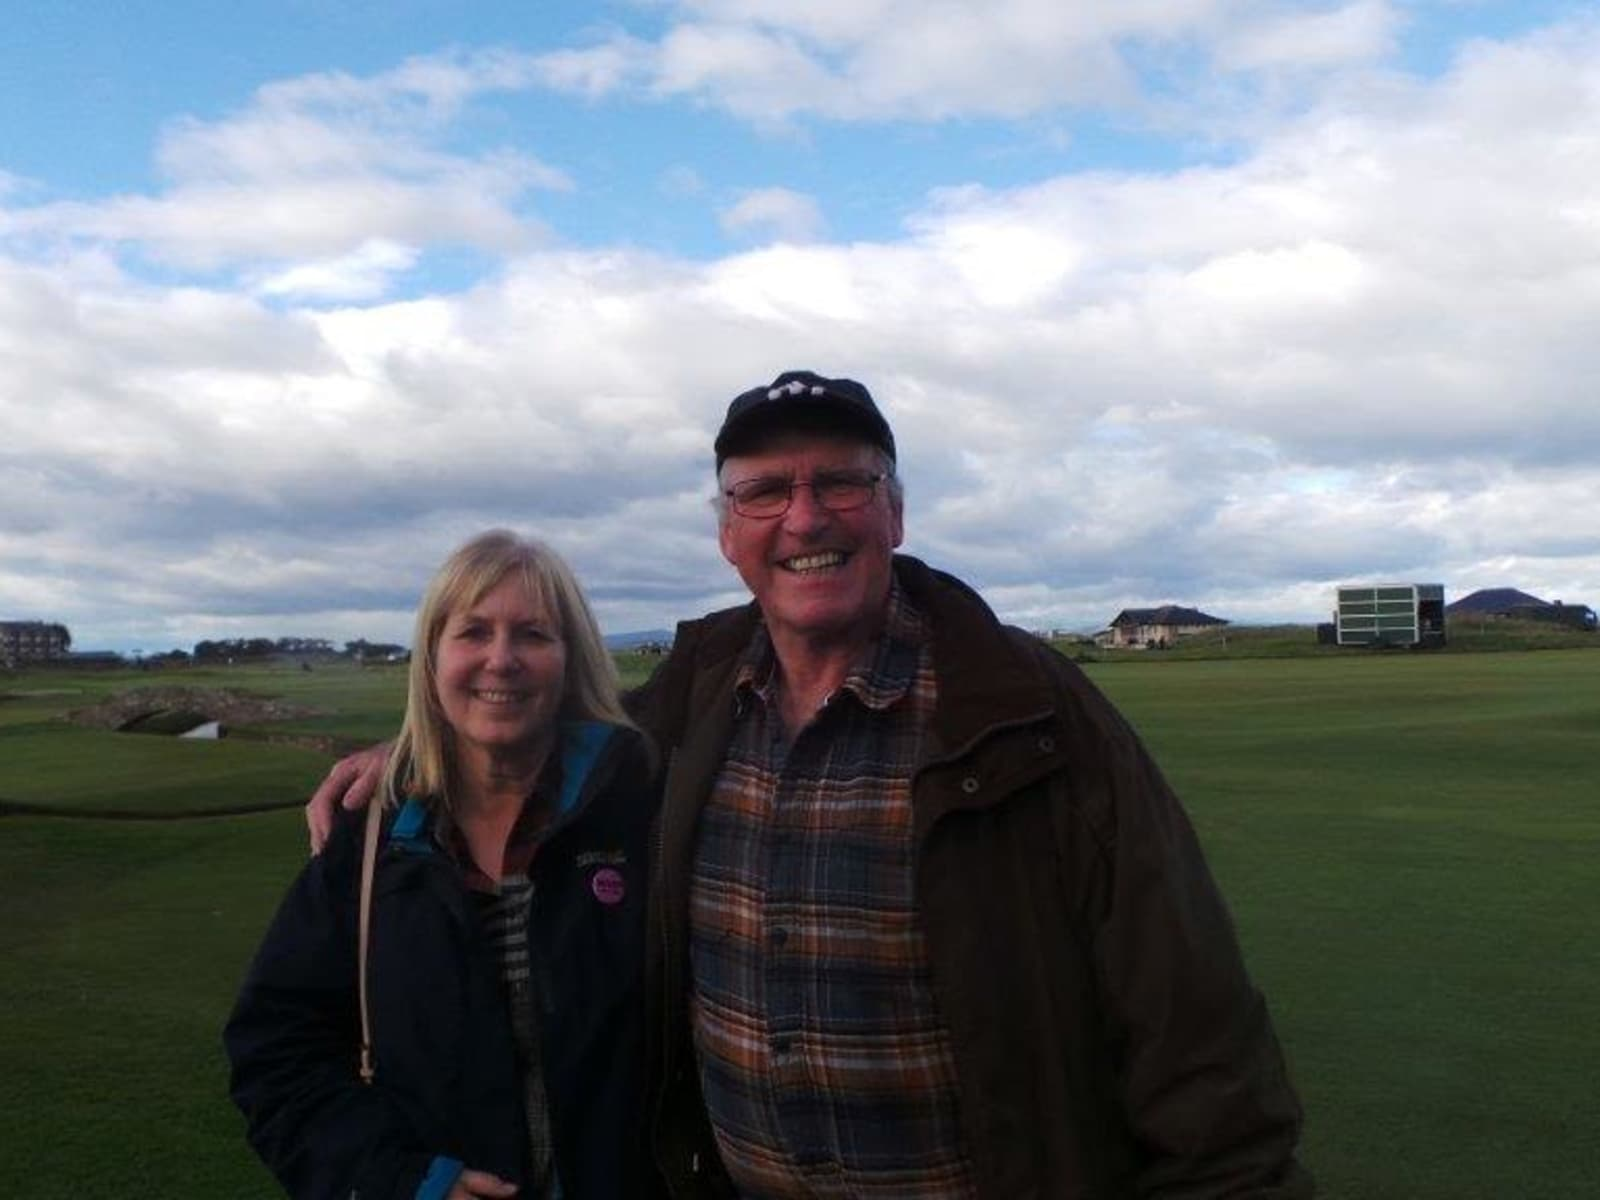 Maureen & Dave from Dunfermline, United Kingdom